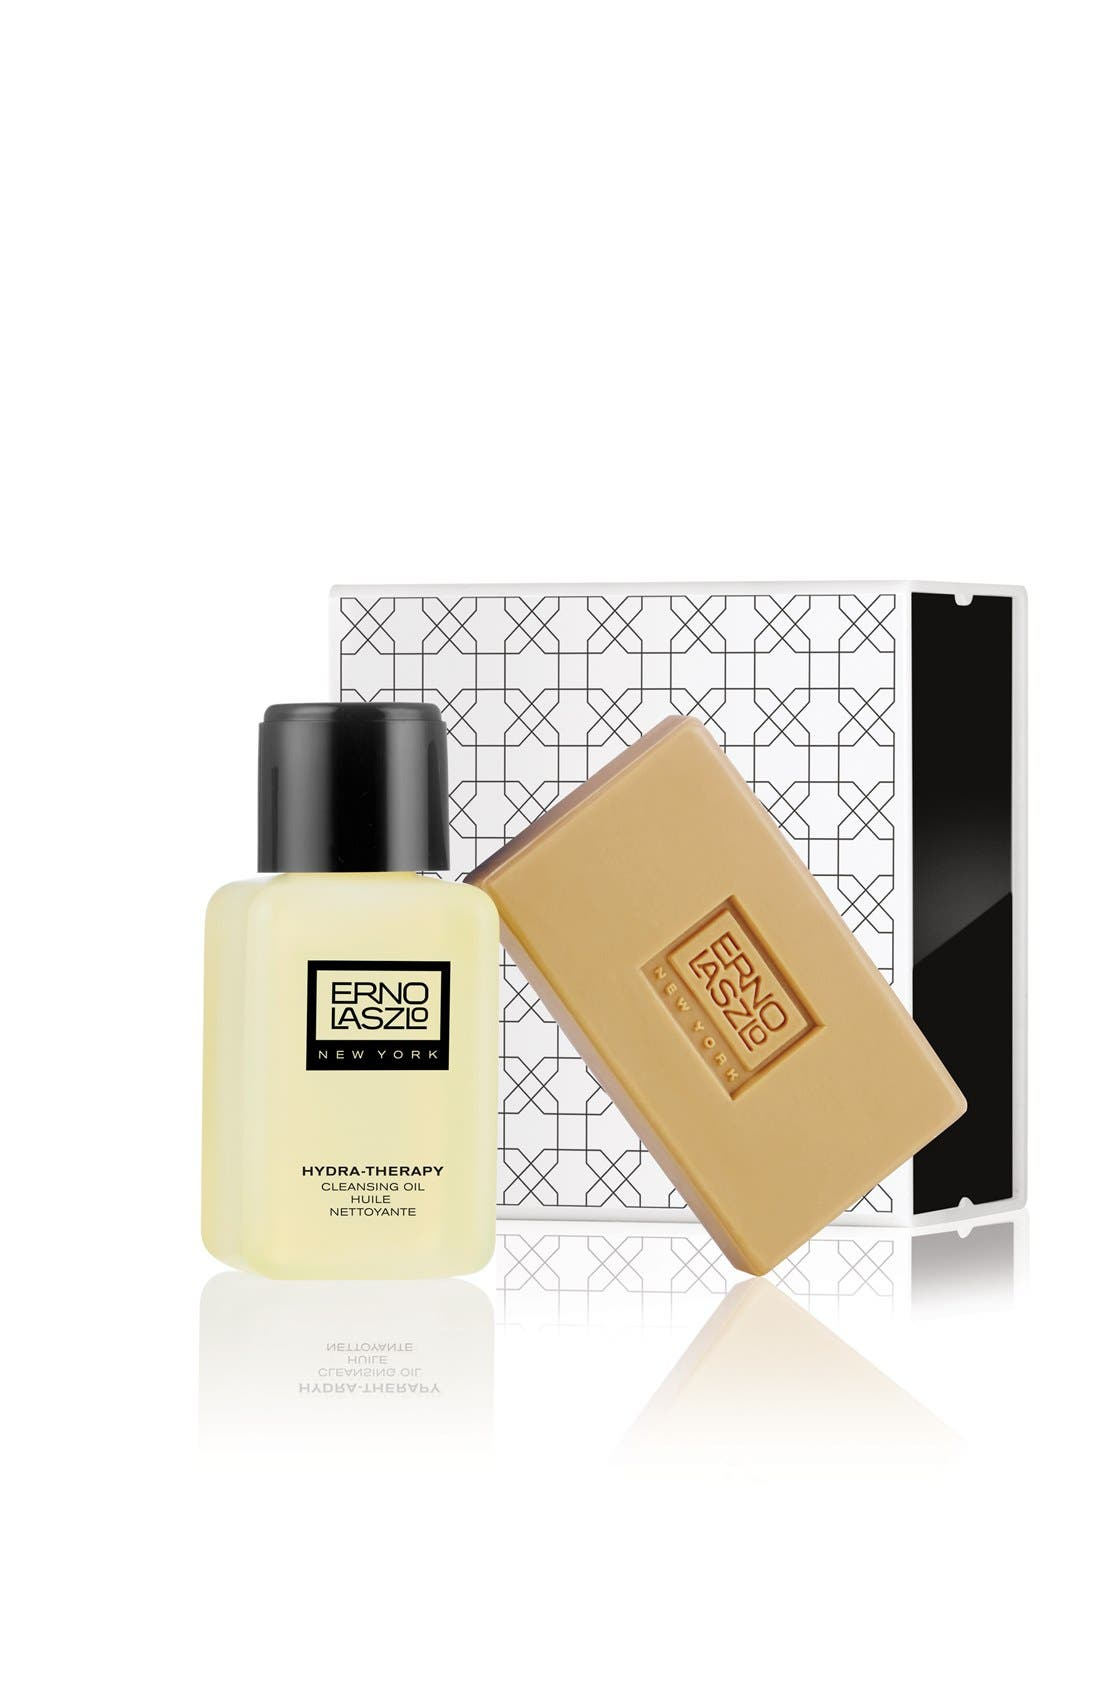 Erno Laszlo 'Hydra-Therapy' Cleansing Set ($38 Value)